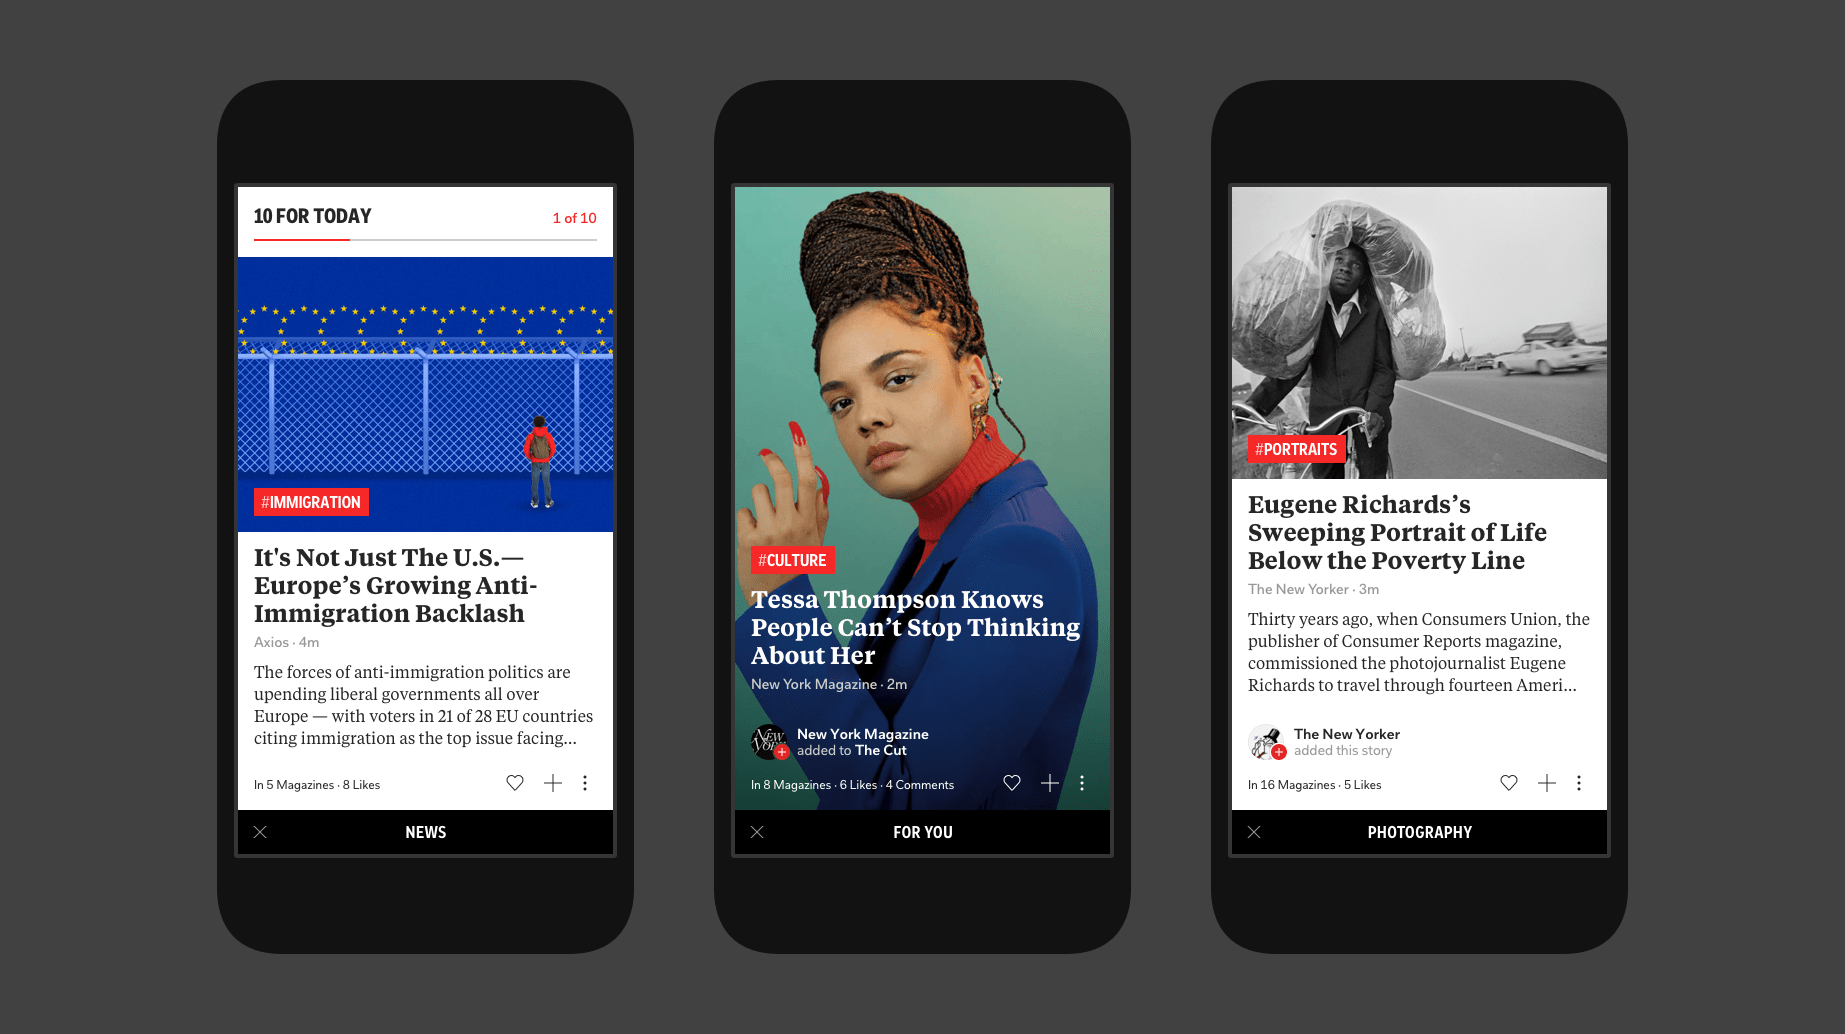 Refreshed article layouts based on the Flipboard Universal Design System.